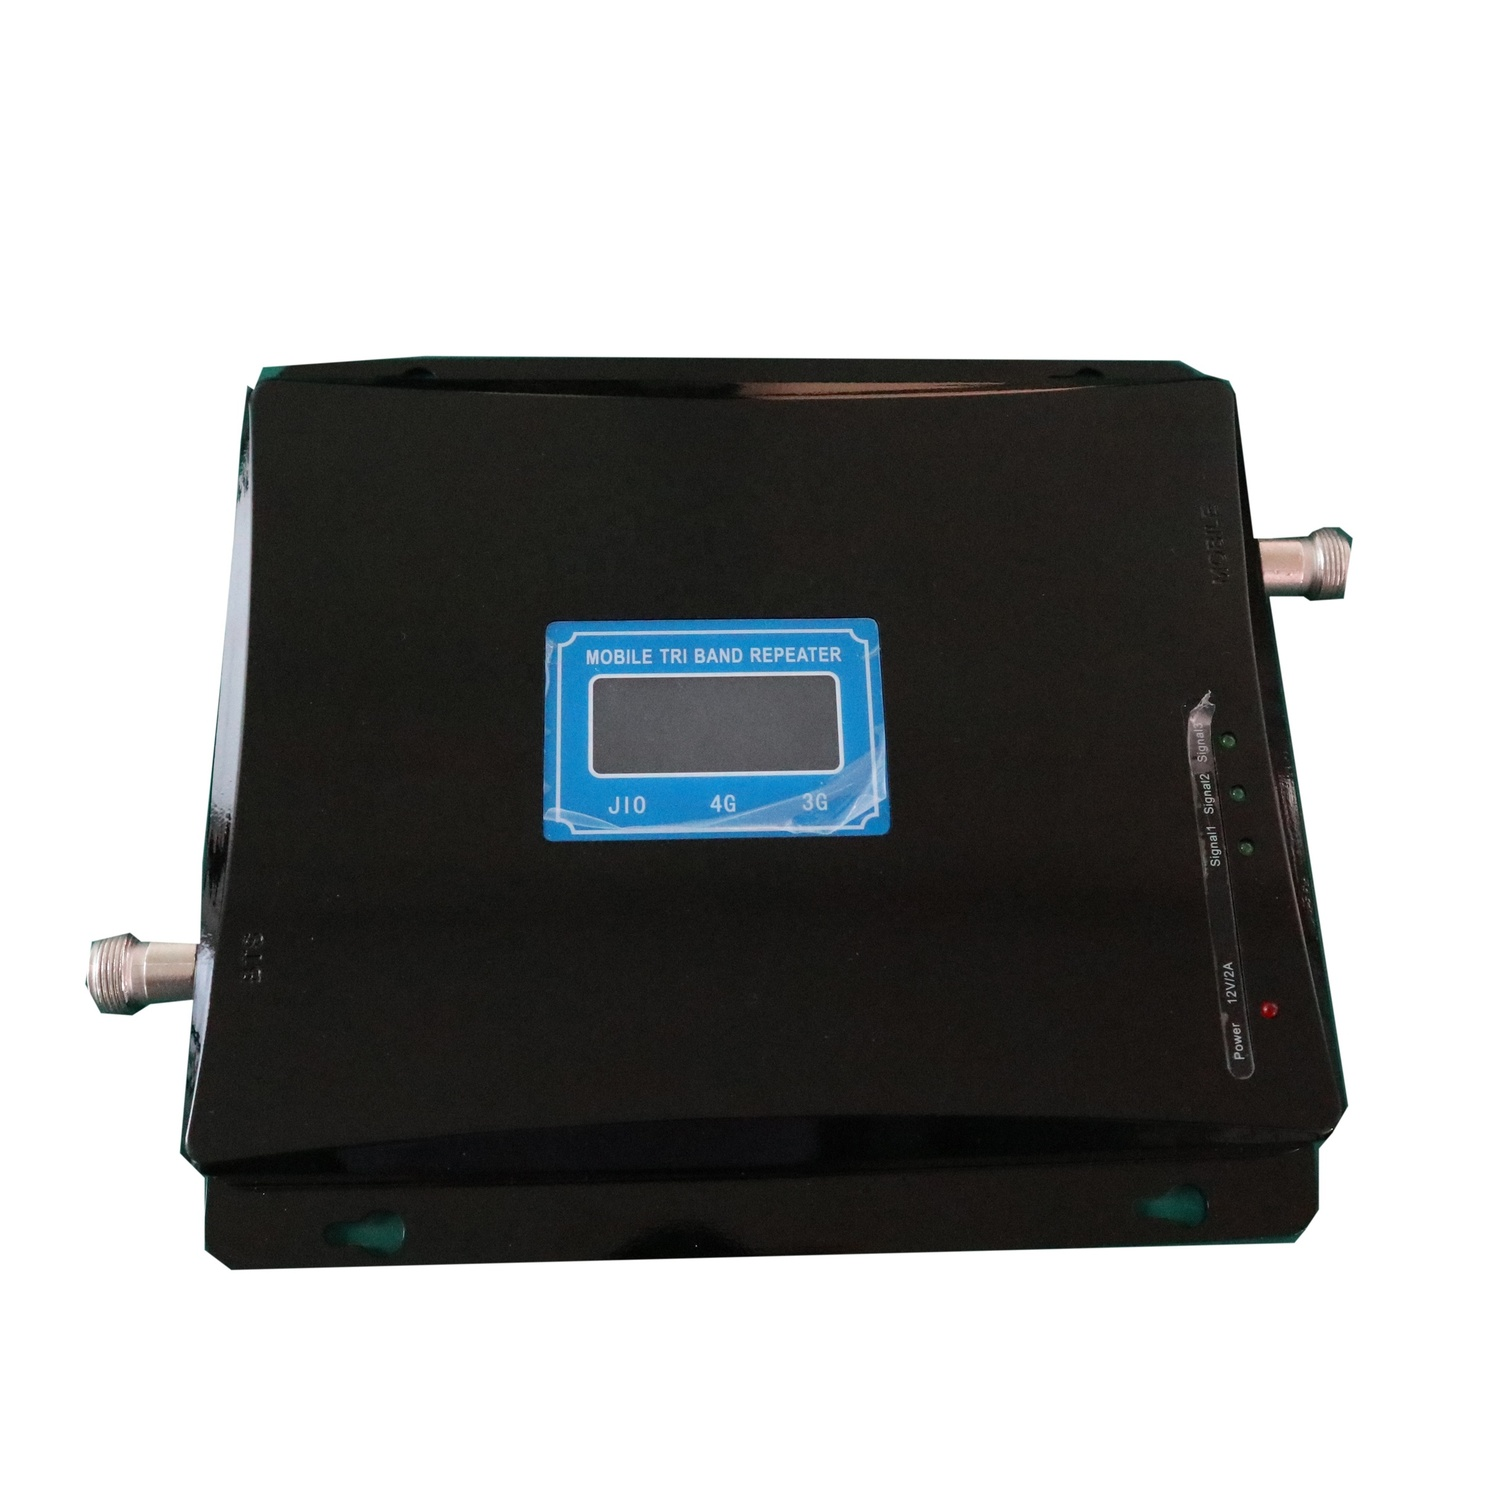 New Arrival 2g3g4g Tri- Band Signal Booster 850/1800/2100mhz Mobile Phone Jio, View 850/1800/2100mhz Tri Band Signal Booster,